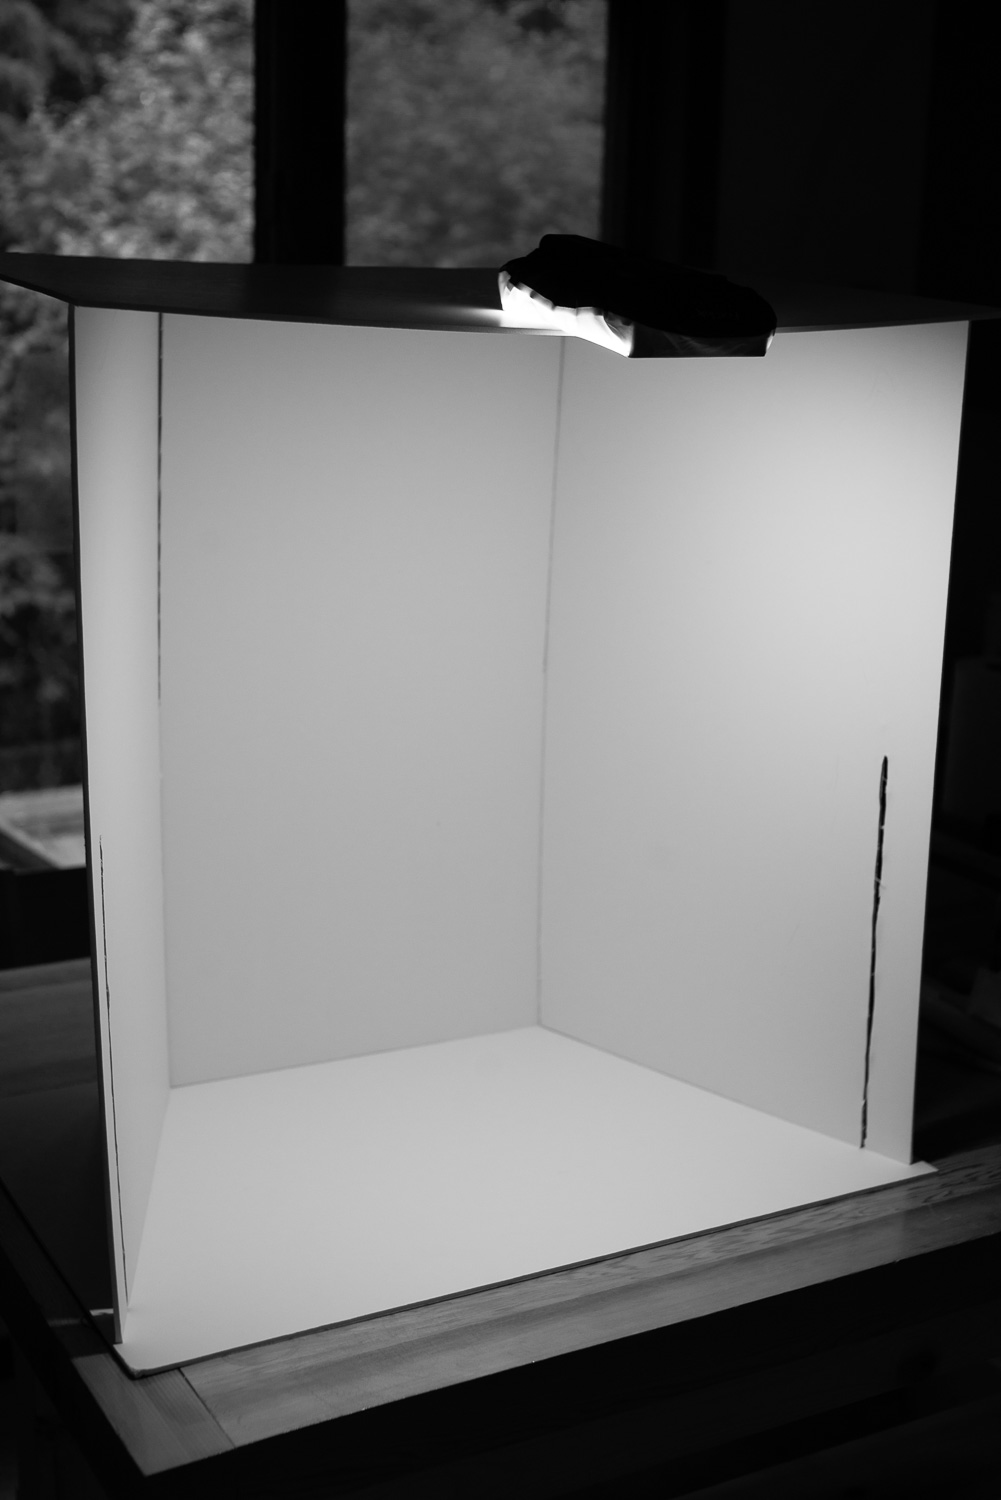 DIY Do It Yourself lightbox - Tips for Photographing Artwork for Marketing Purposes